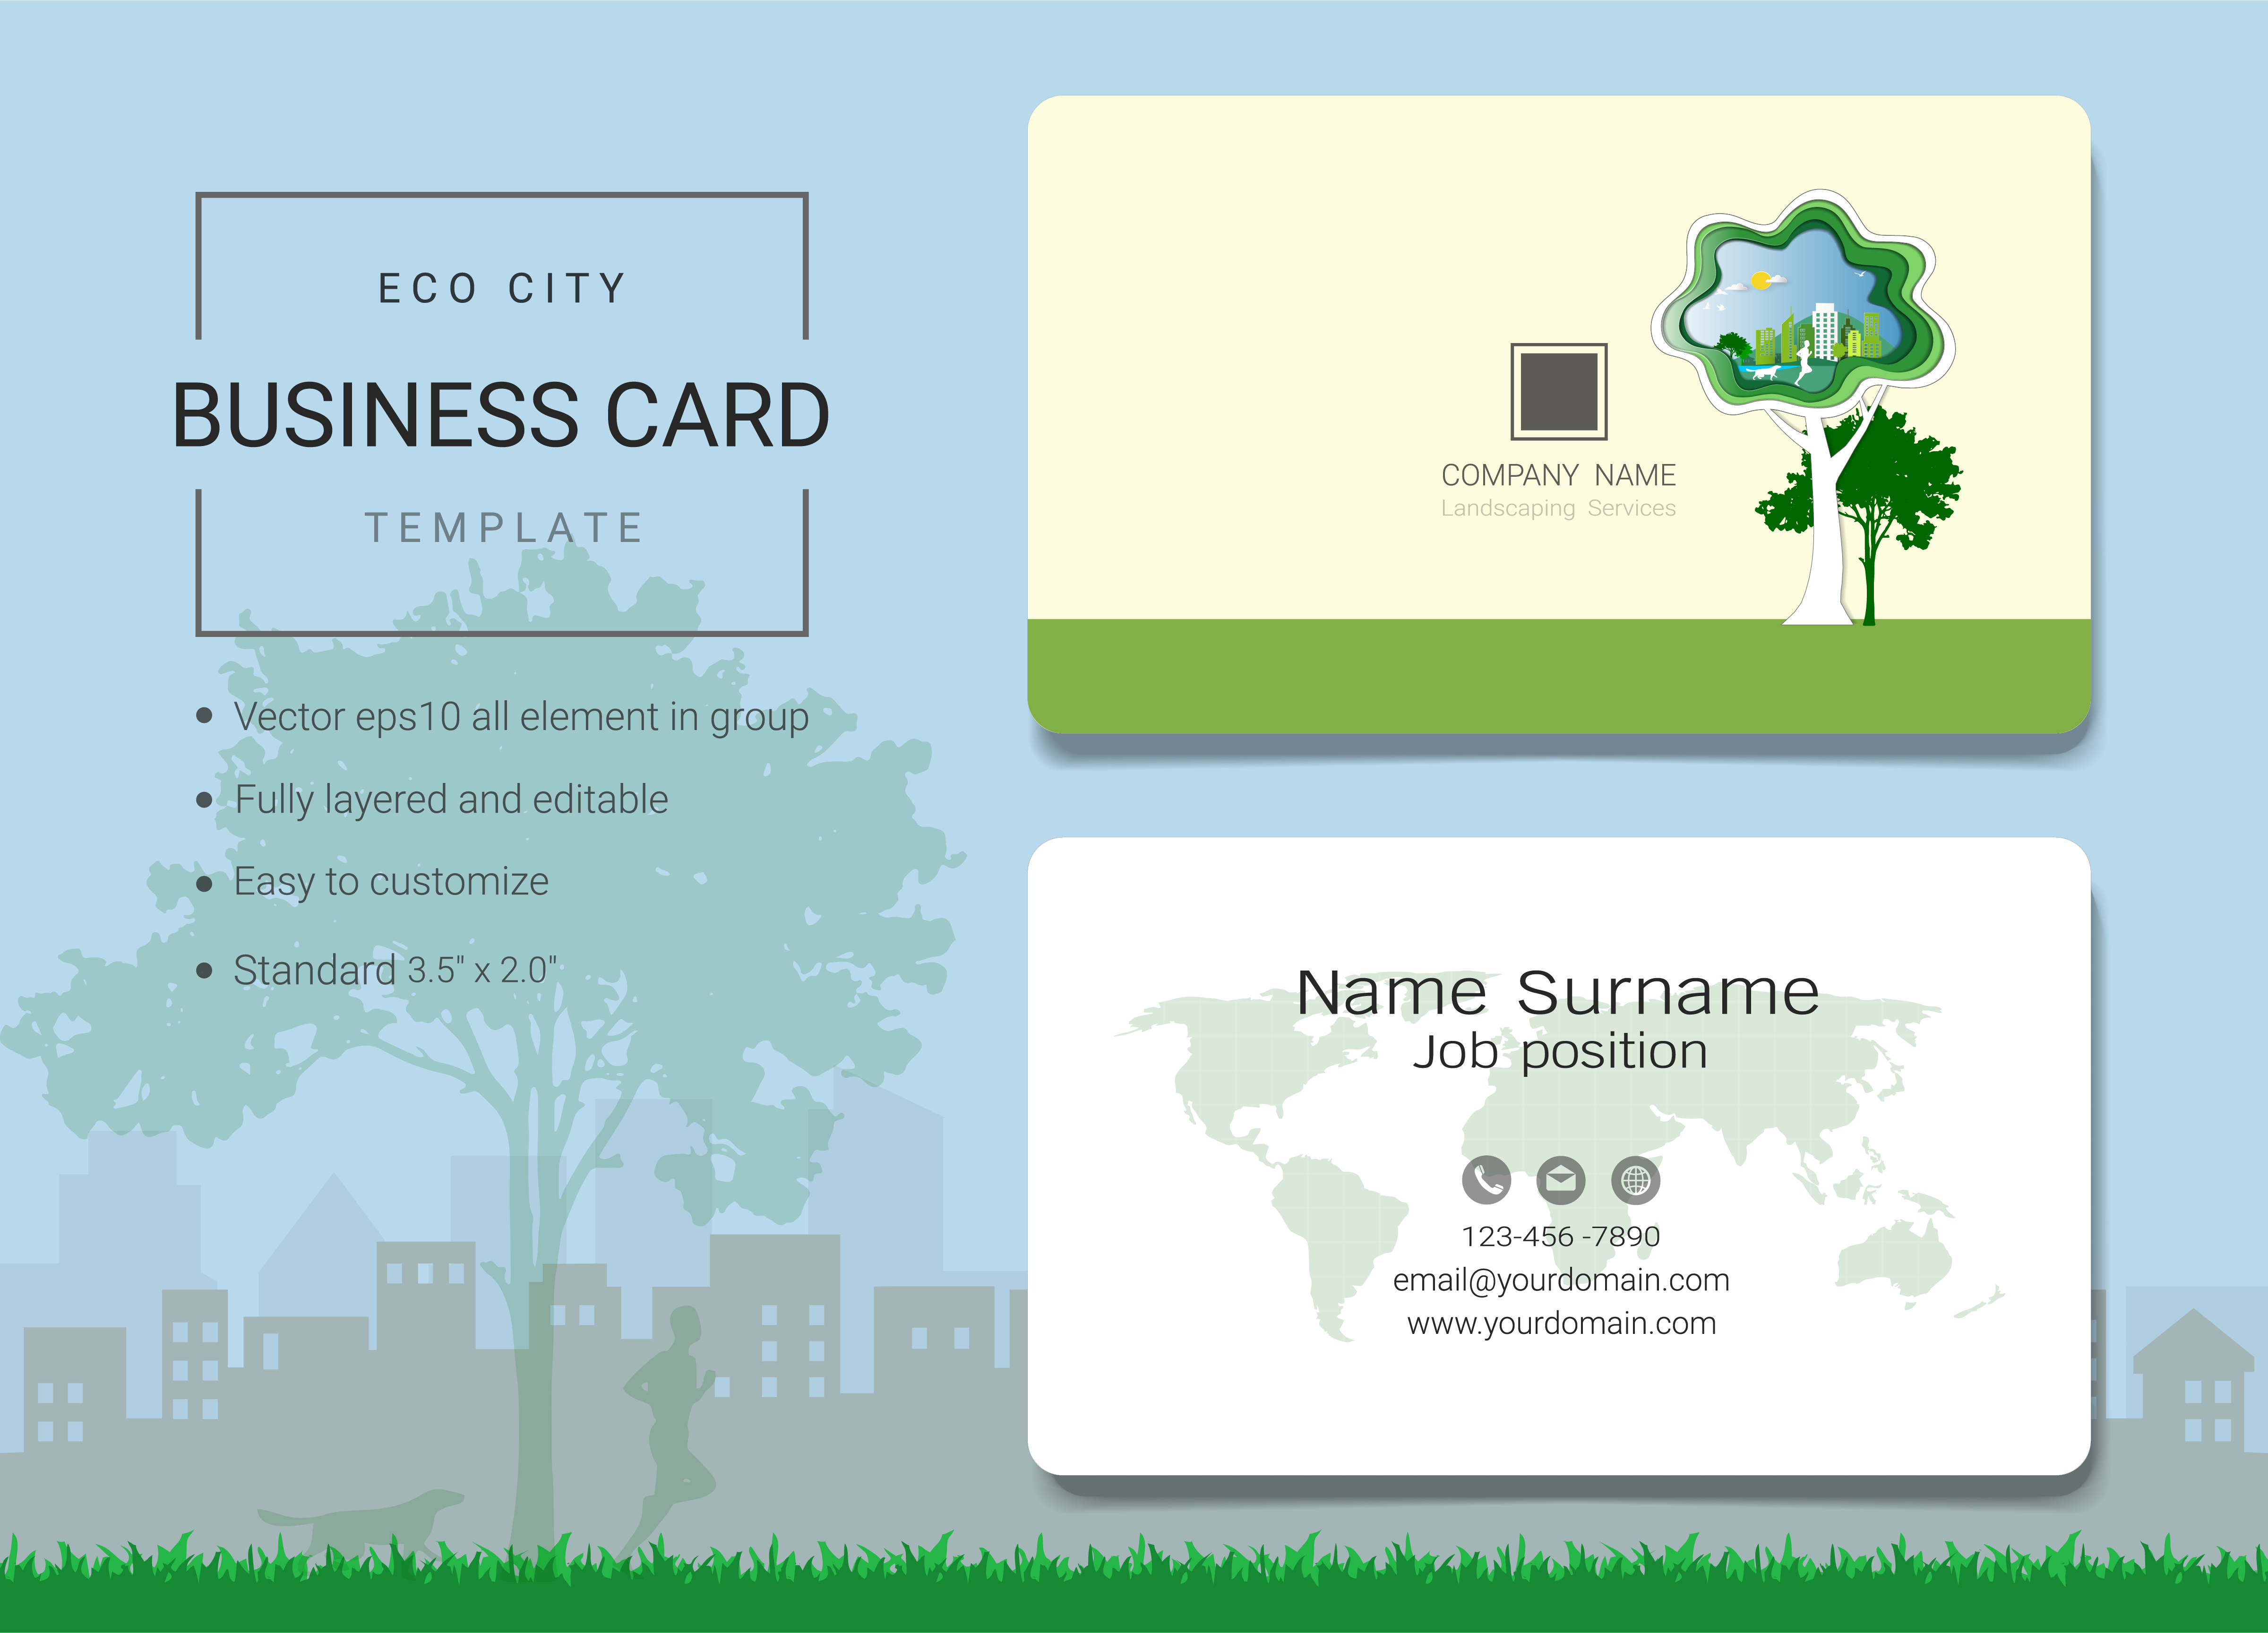 eco city business name card design template  download